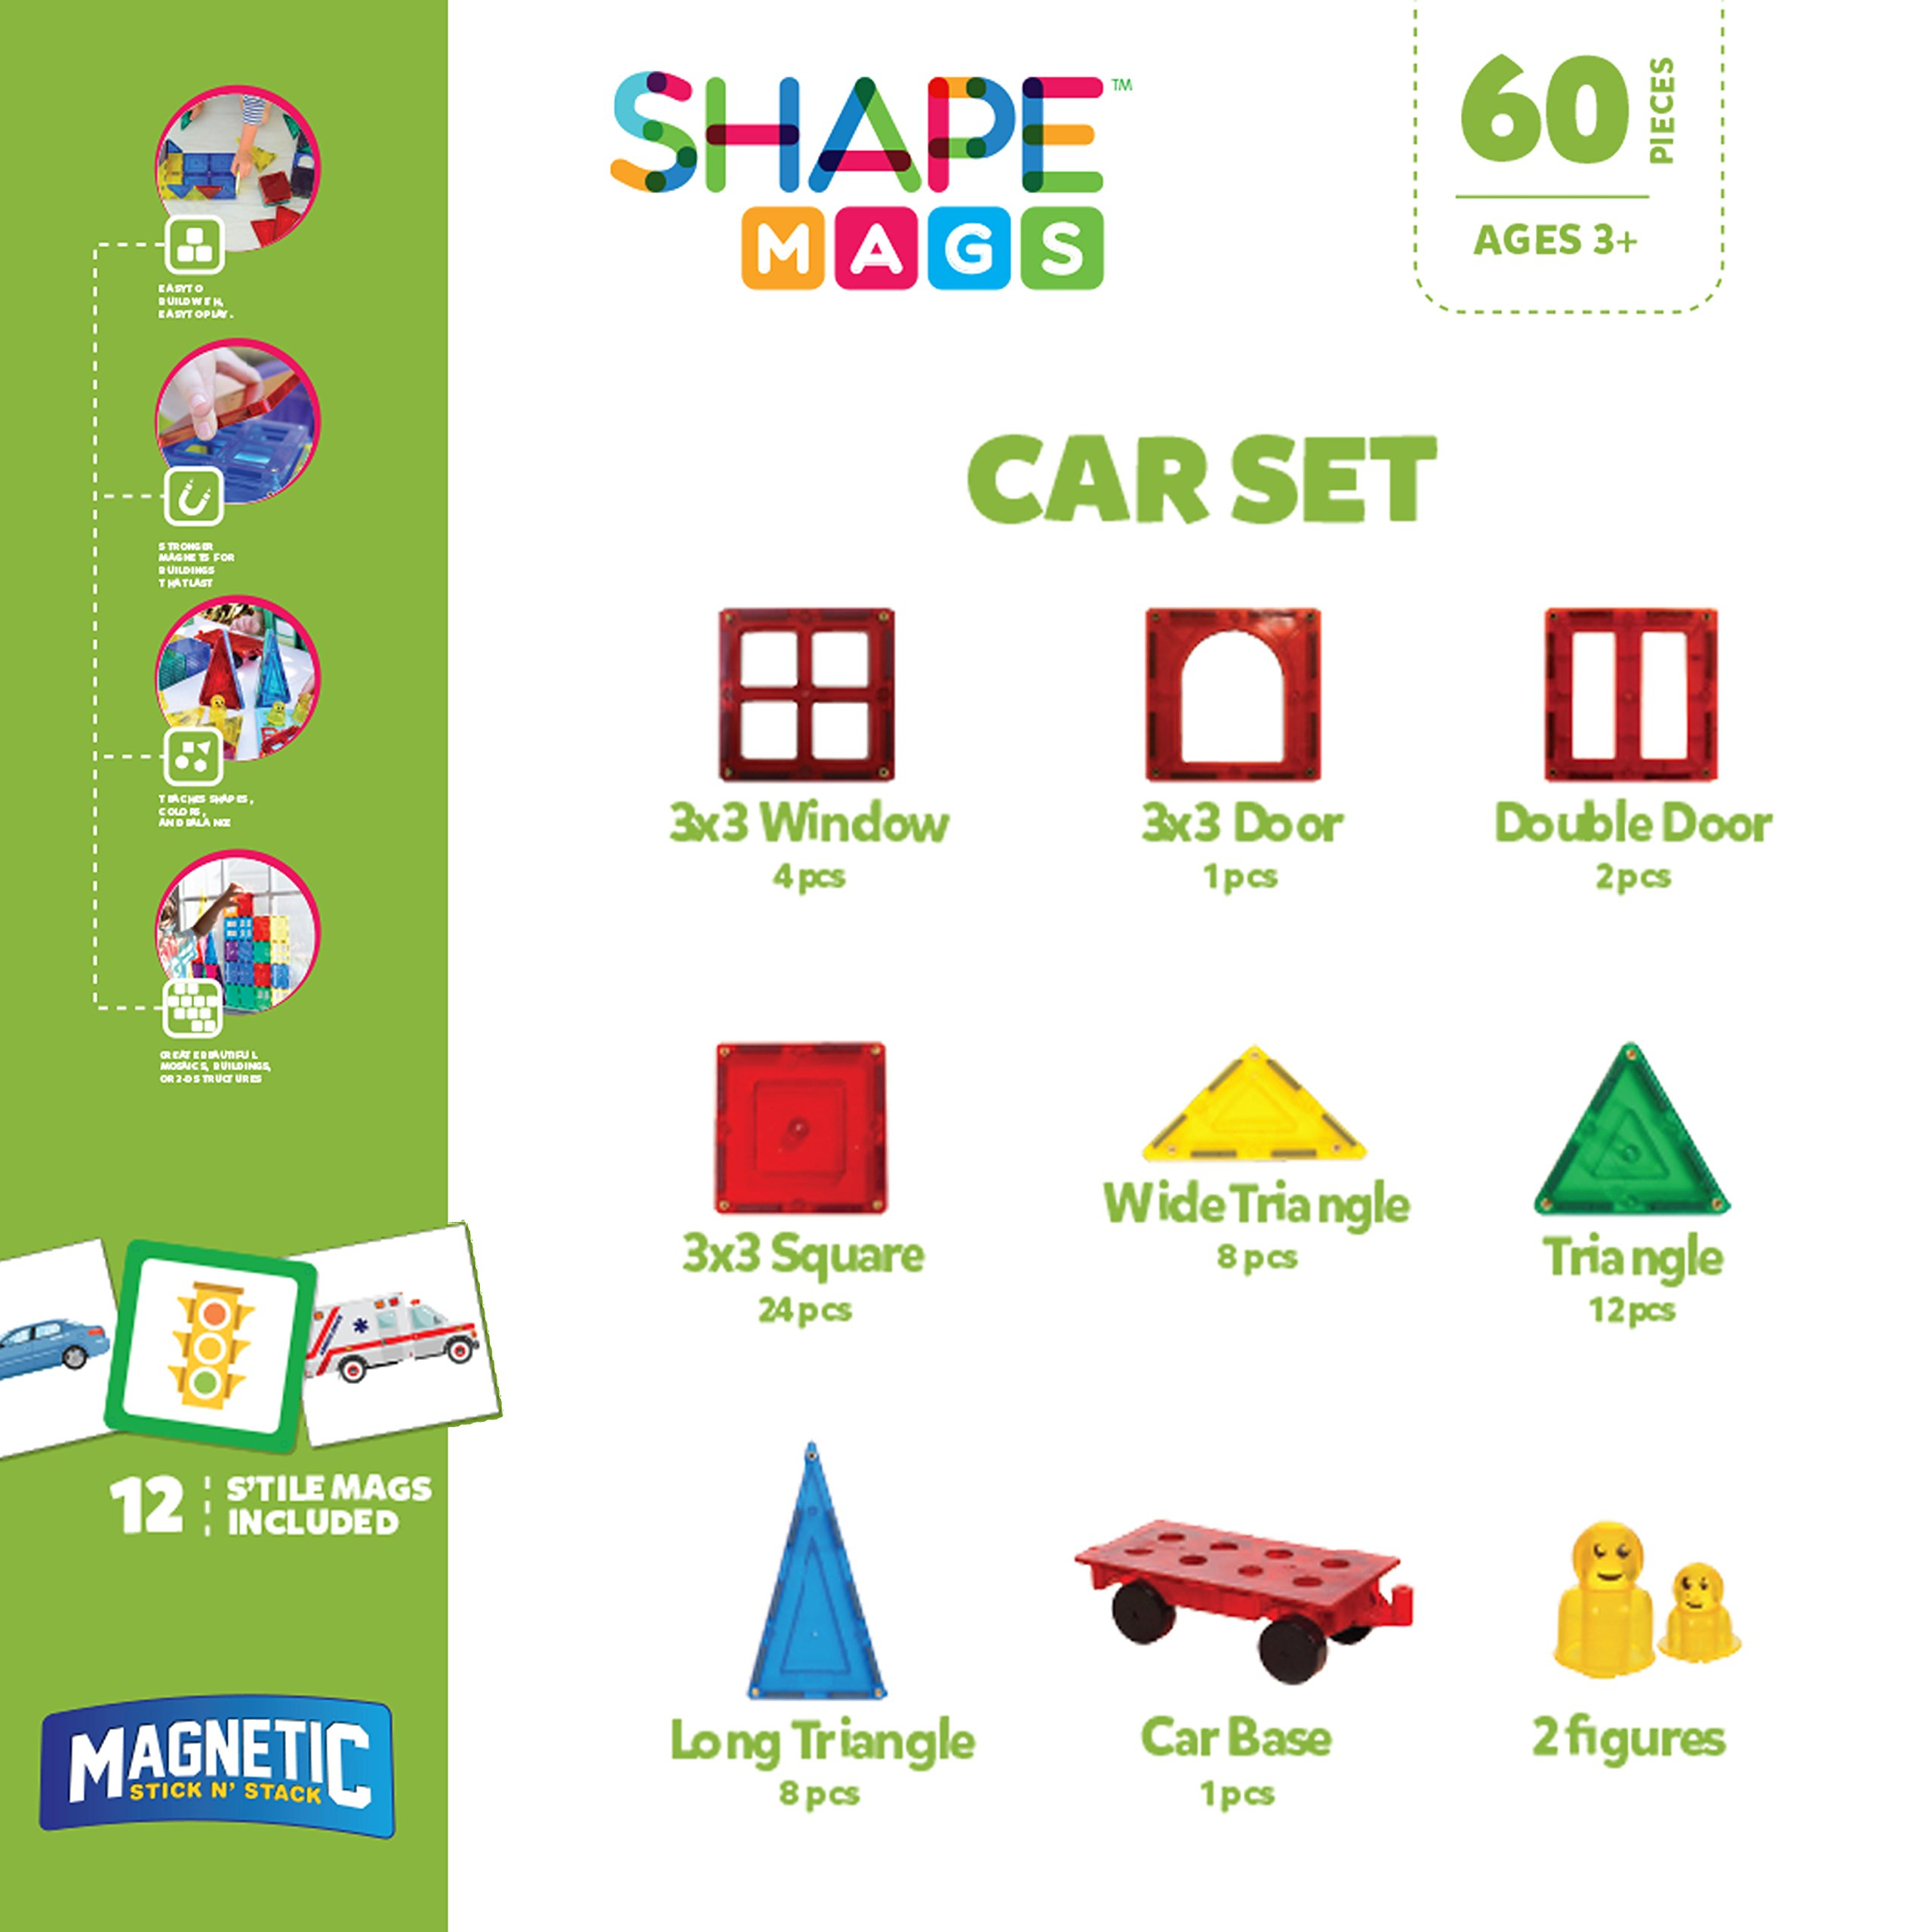 Magnetic Stick N Stack Award Winning 72 Piece Set Includes 60 Magnetic Tiles and 12 Stile Mags, Made with Power+Magnets by Magnetic Stick N Stack (Image #2)